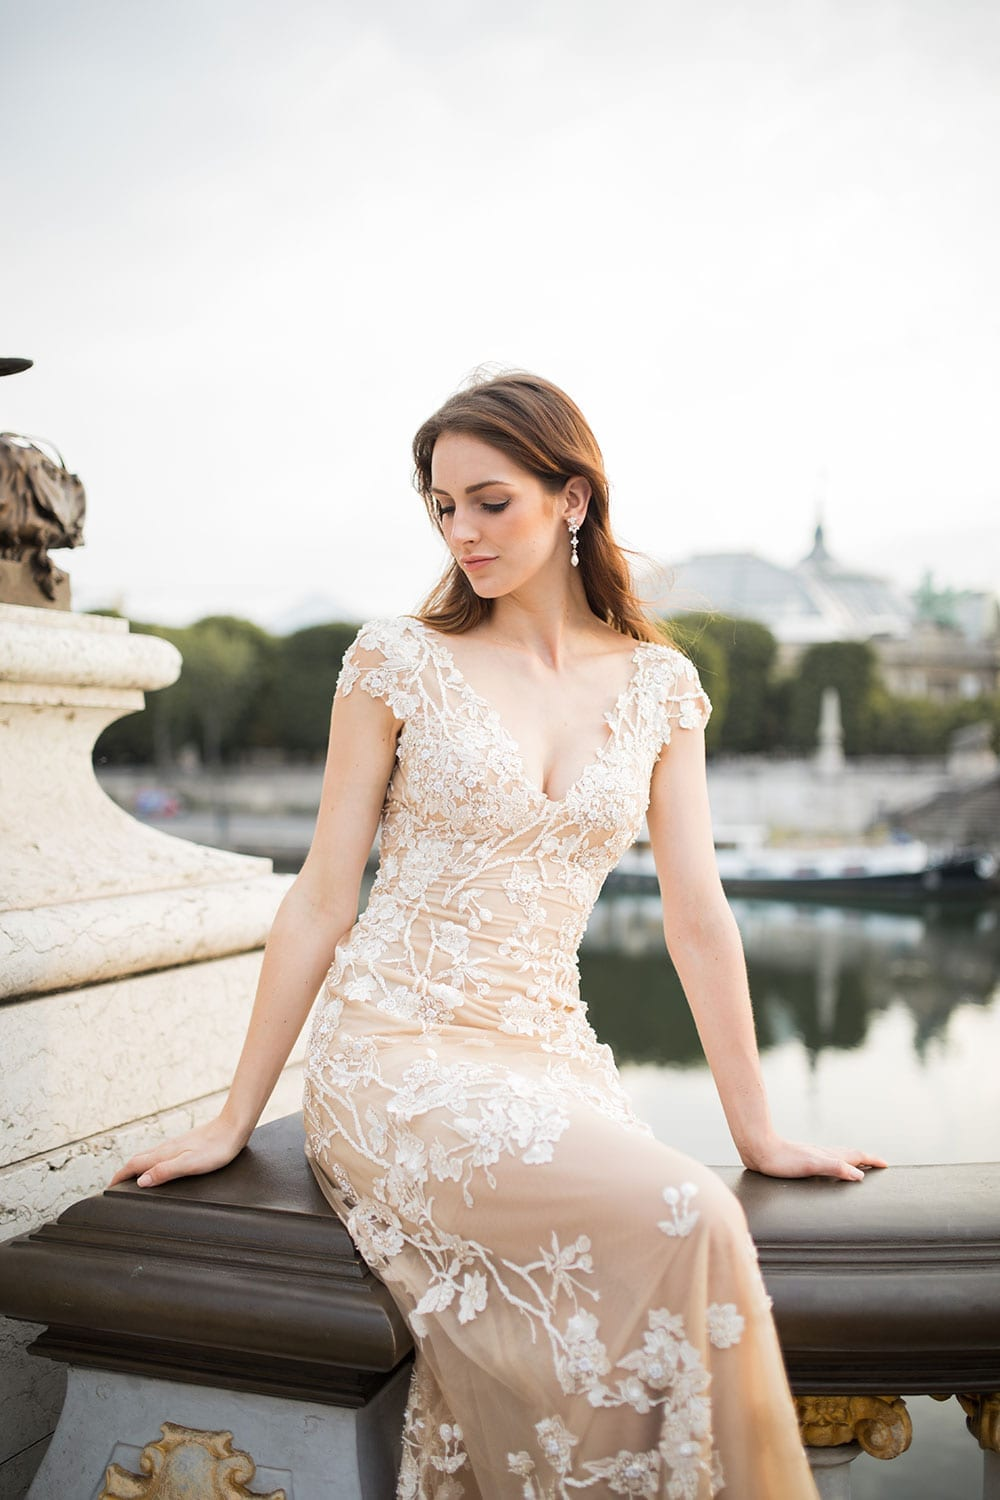 Model wearing Vinka Design Vianna Wedding Dress, a Low Back Beaded Wedding Gown with train sitting on the wall of a promenade in Paris